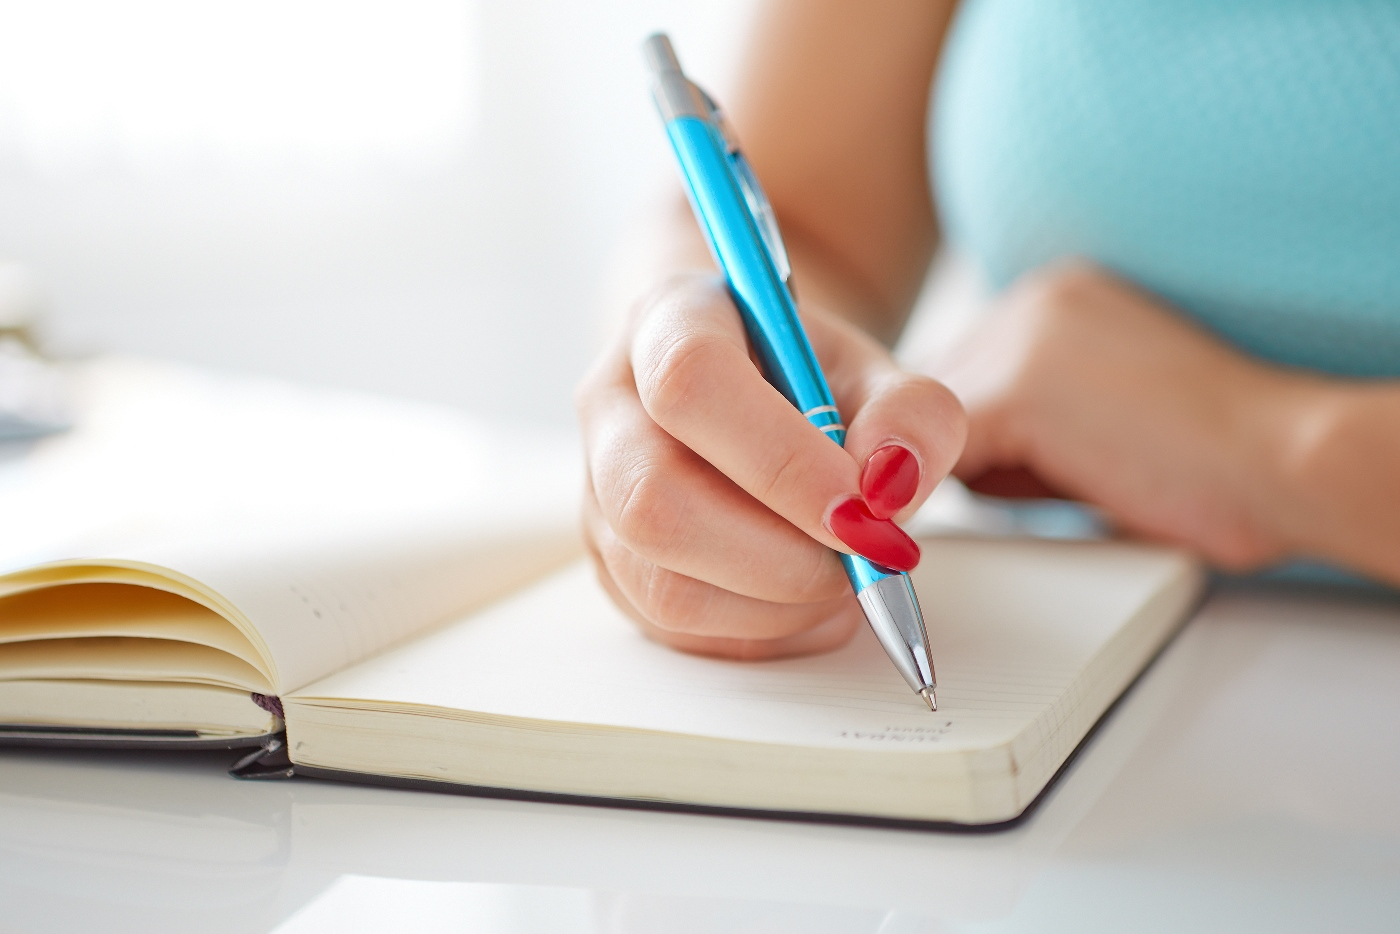 writing a journal Journal writing is the process of recording personal insights, reflections and questions on assigned or personal topics journal projects assigned in class may include your thoughts about daily.